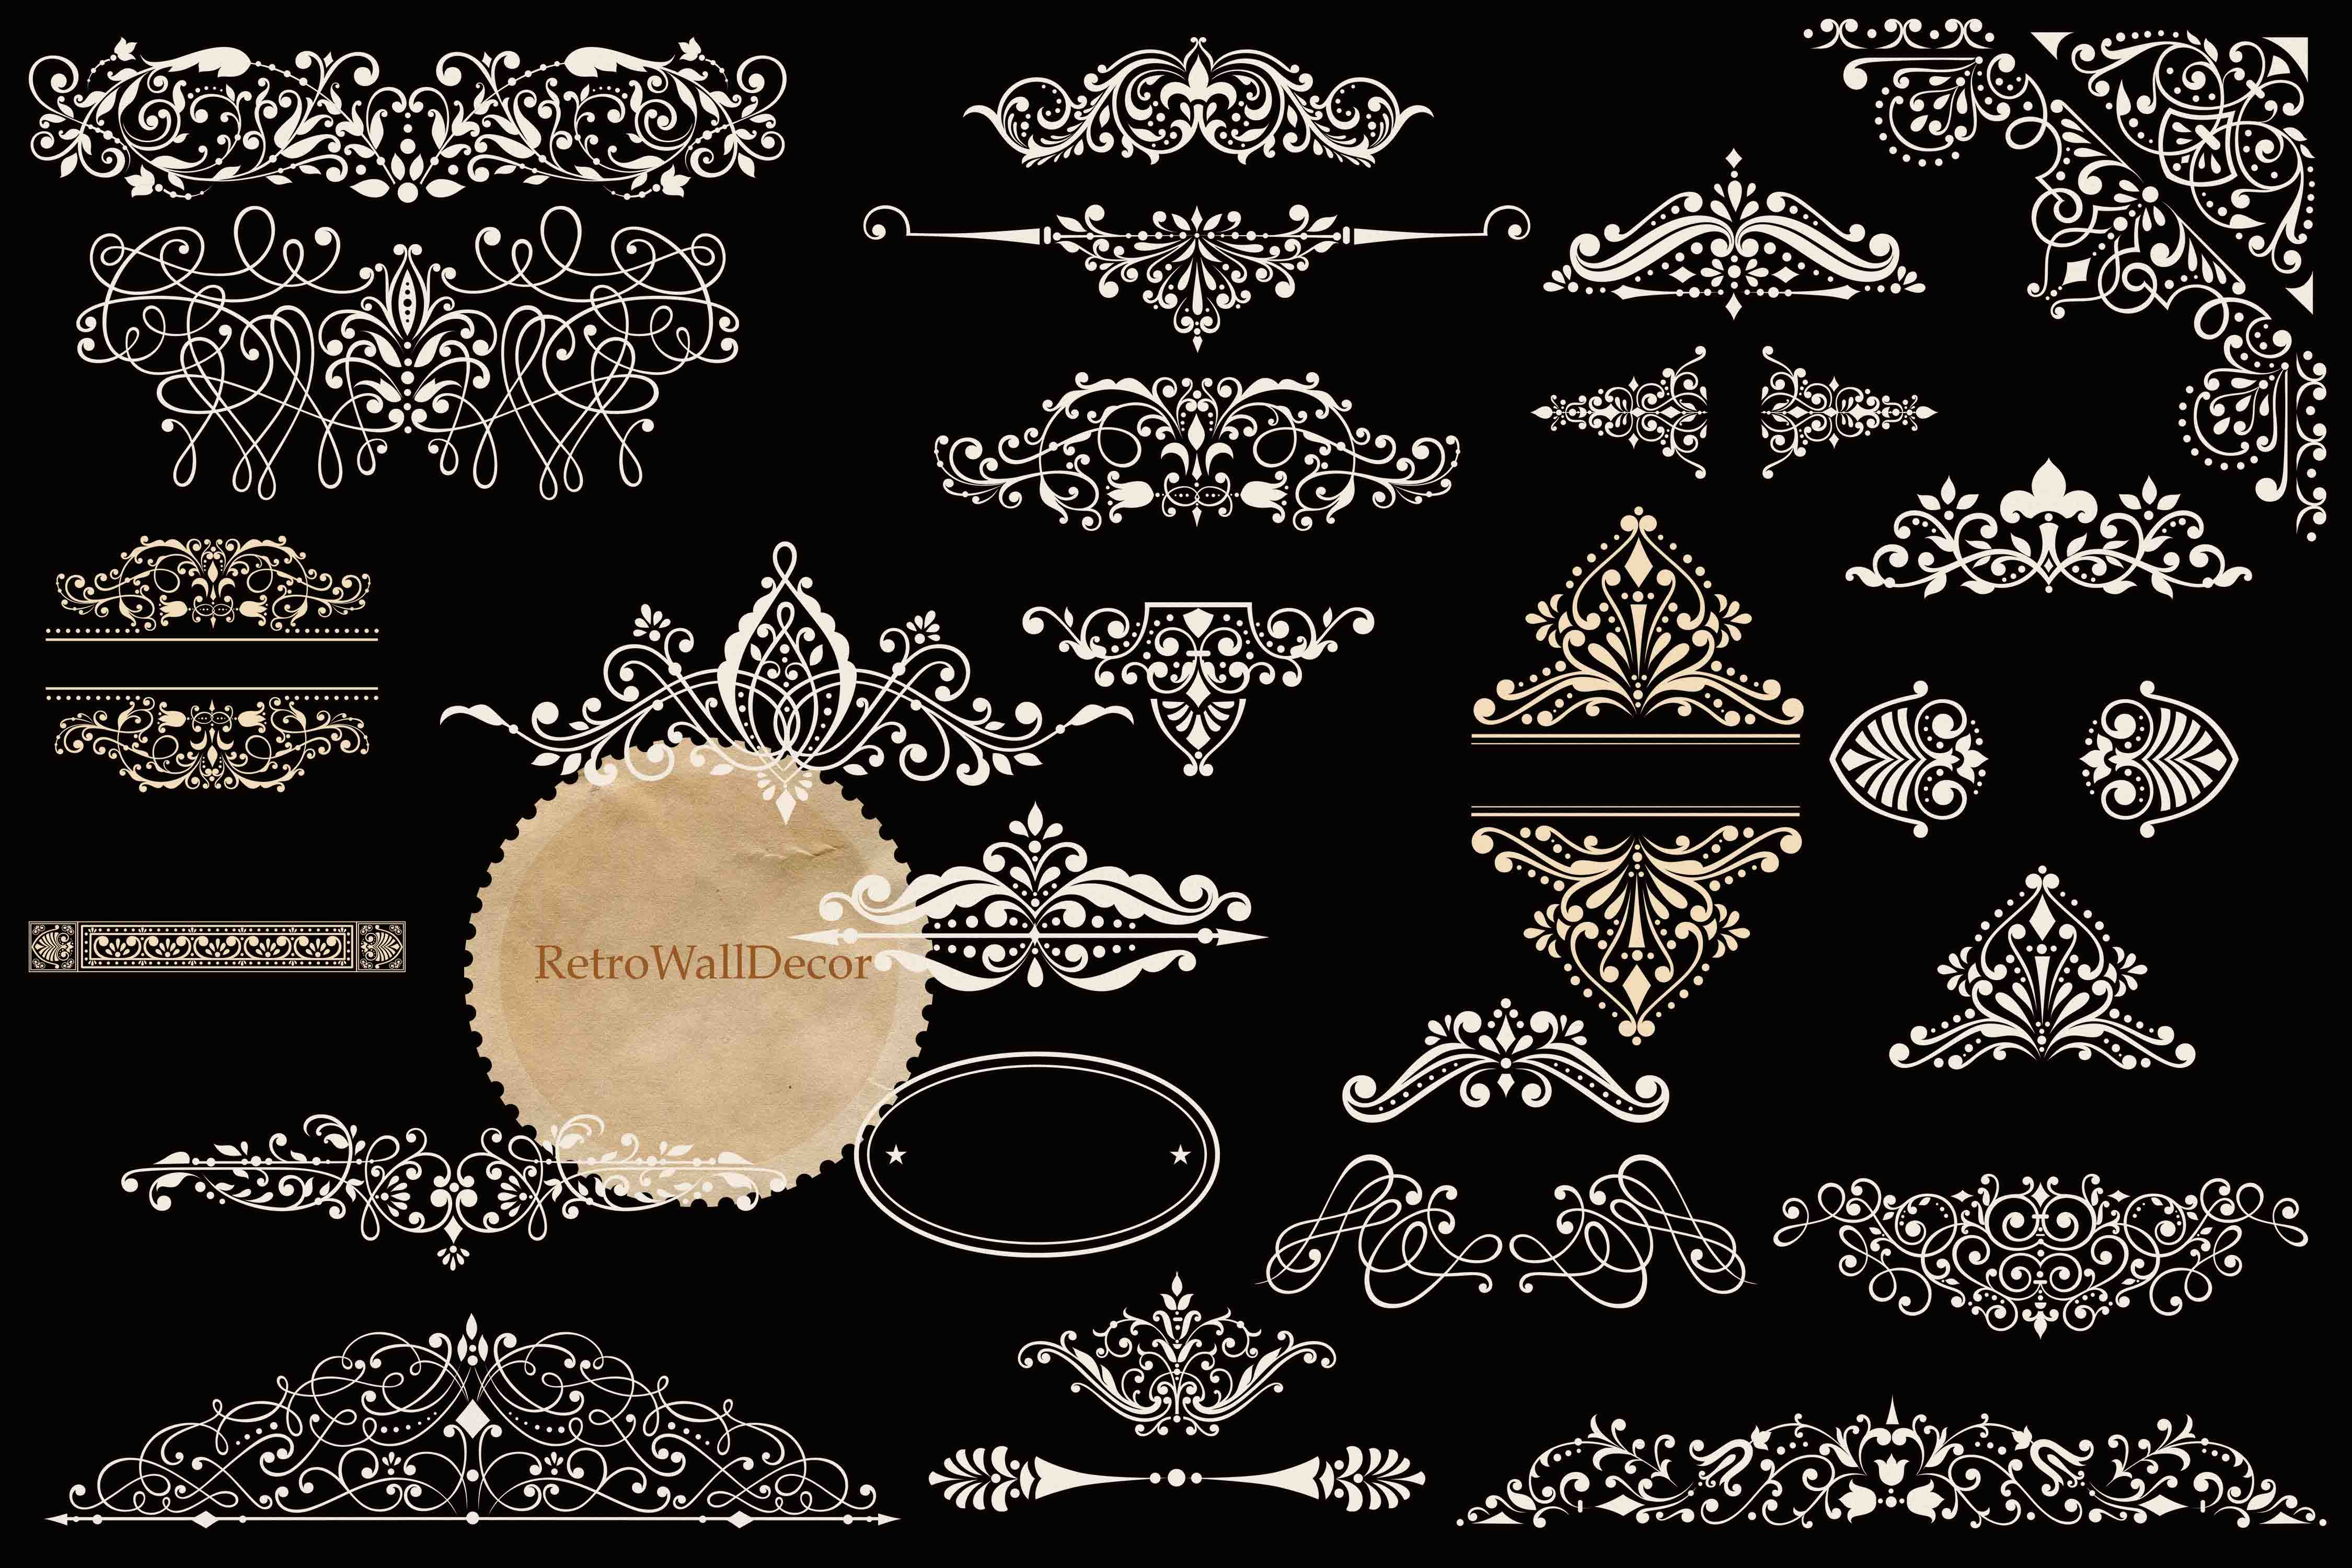 Download Free Vintage Ornaments Clip Art Set Graphic By Retrowalldecor for Cricut Explore, Silhouette and other cutting machines.